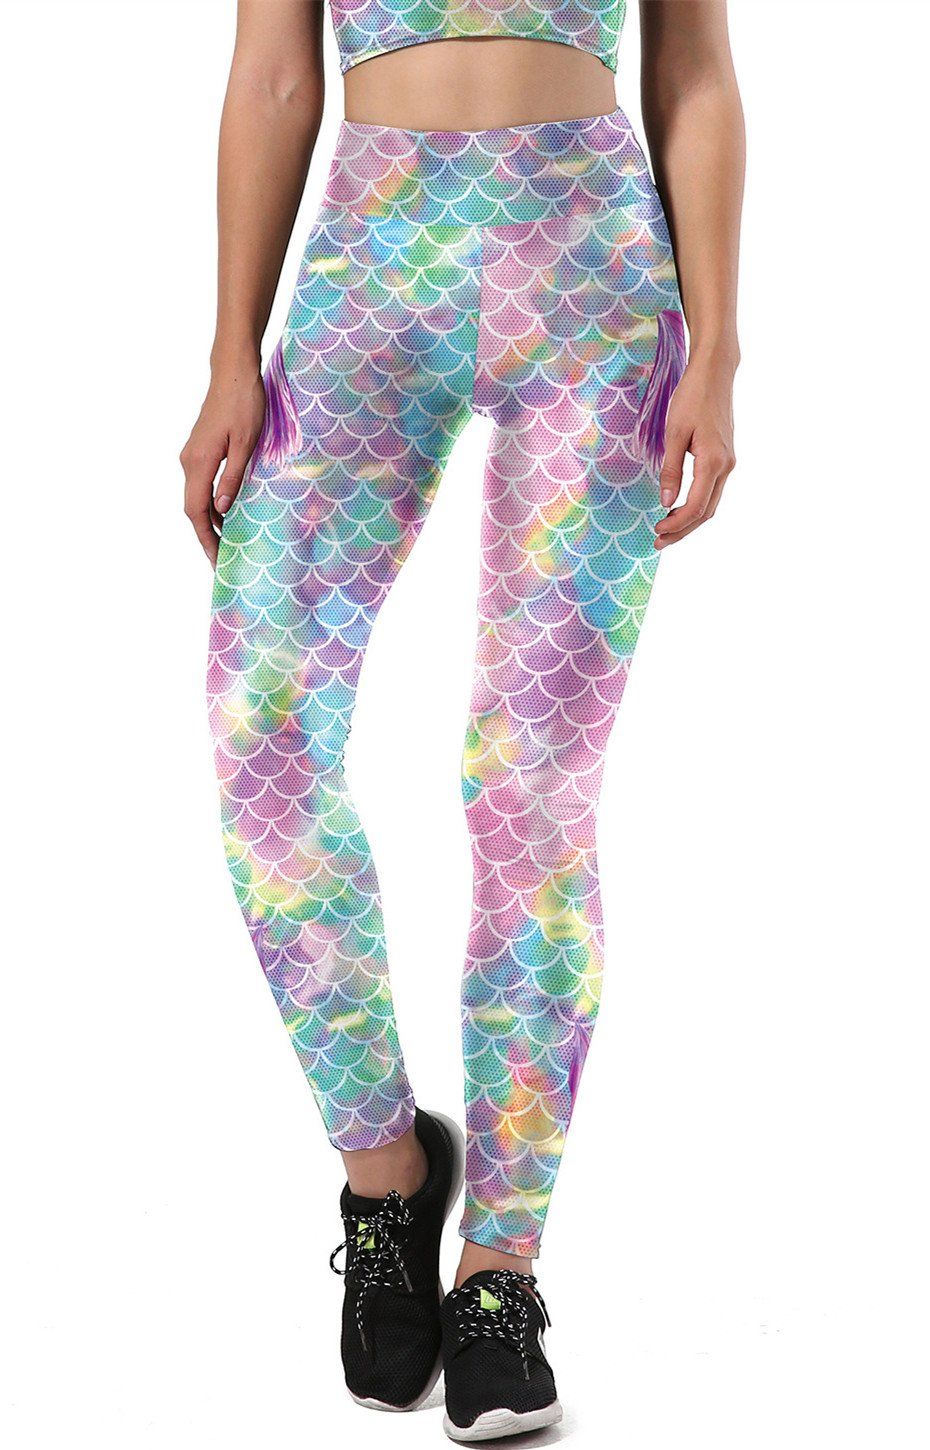 Gludear Women's Shiny Mermaid Fish Scale Printing Full Length Leggings,Pink,S